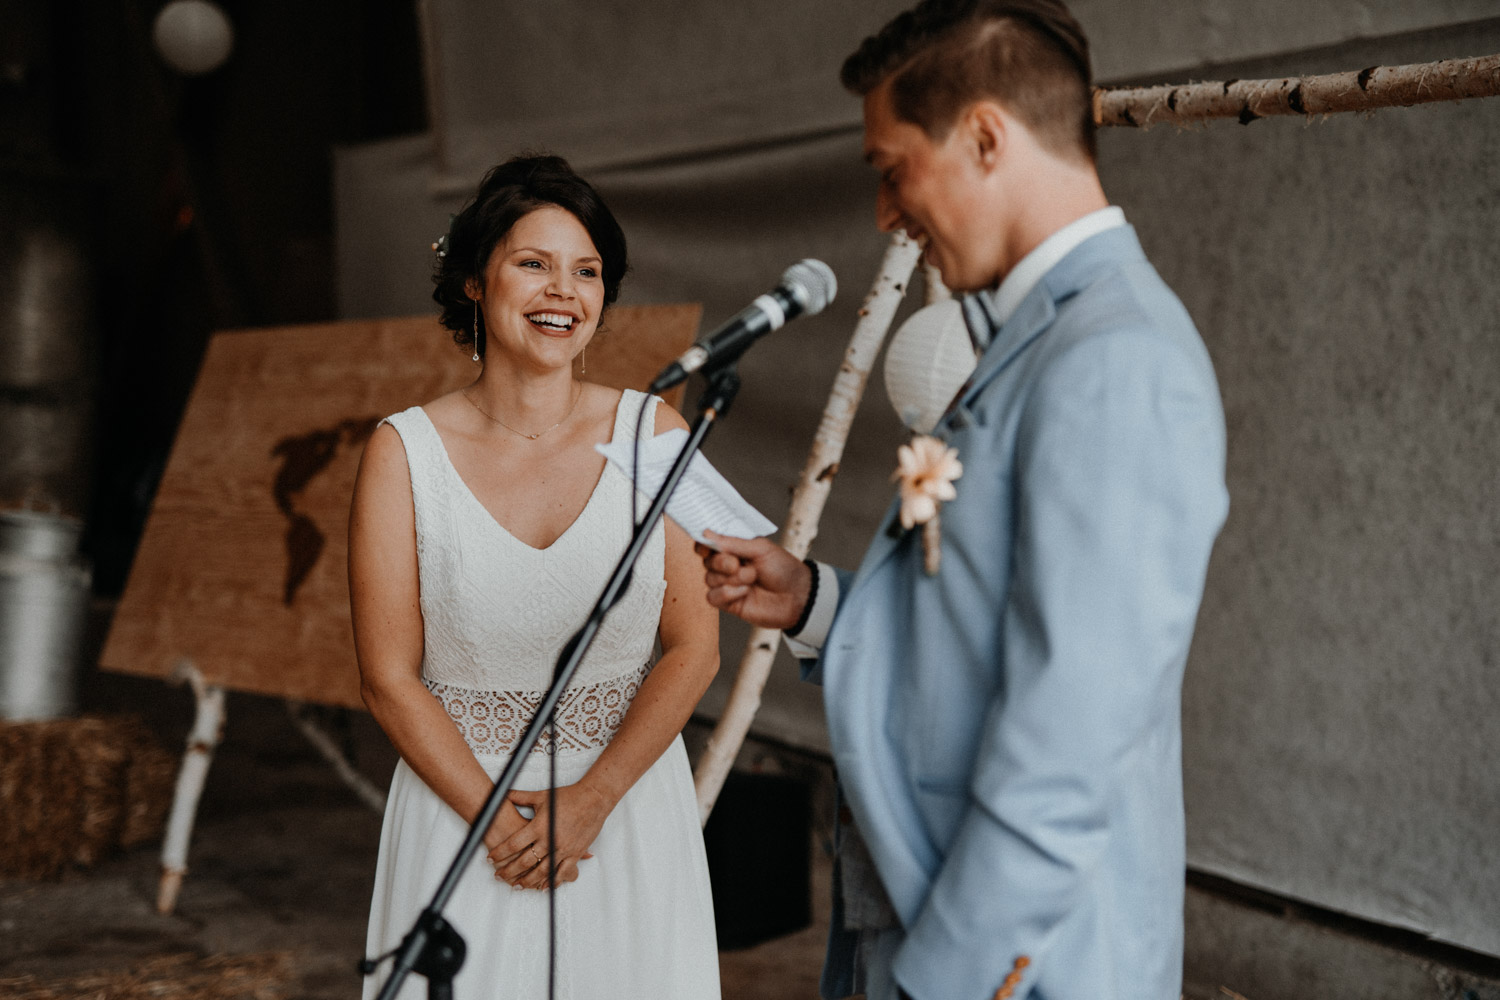 Vintage Industrial Bohemian Wedding in Switzerland wedding photographer elopement photographer getting ready farm wedding free ceremony